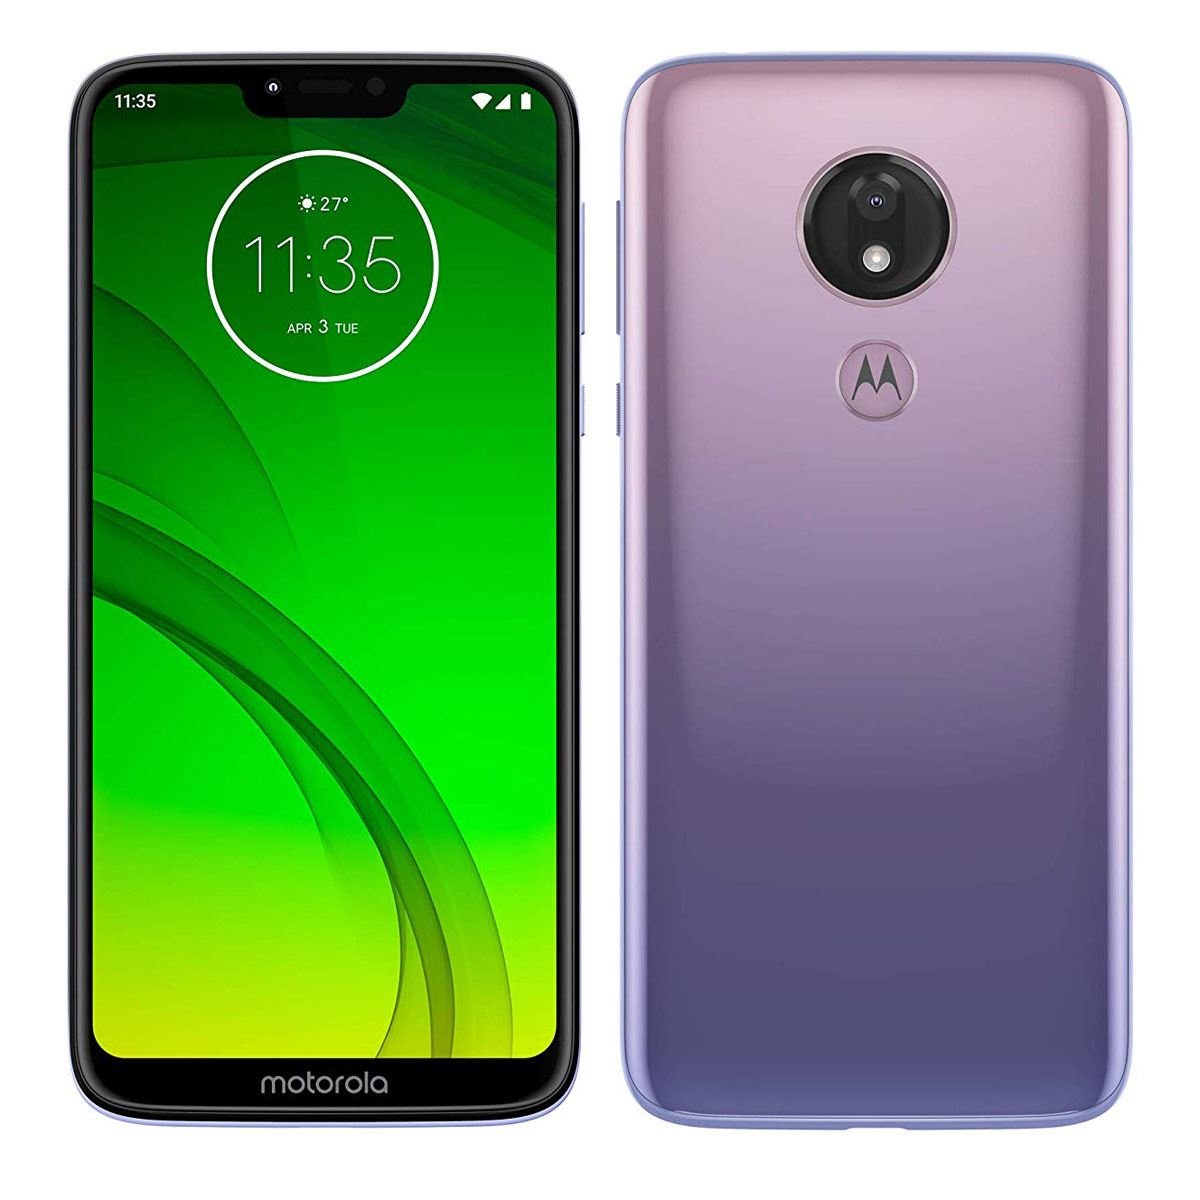 Celular Motorola XT1955-2 G7 Power Color Violeta R9 (Telcel)